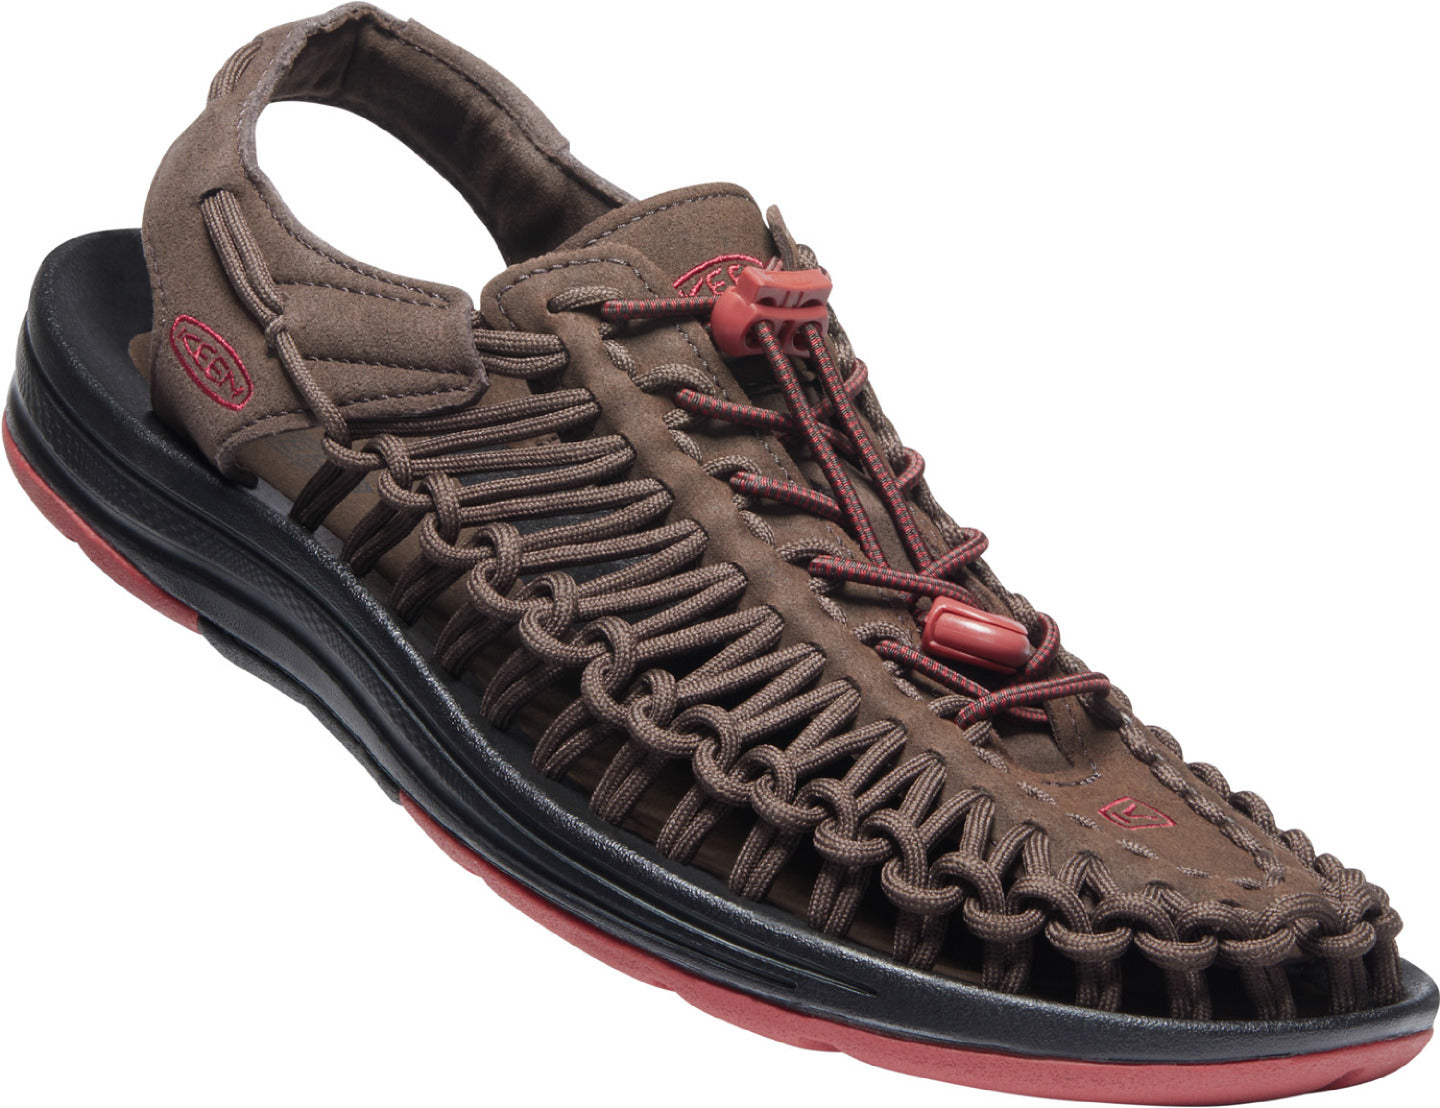 Men's KEEN Uneek Classic Two Cord Sandal in DEMITASSE/KETCHUP color from the front